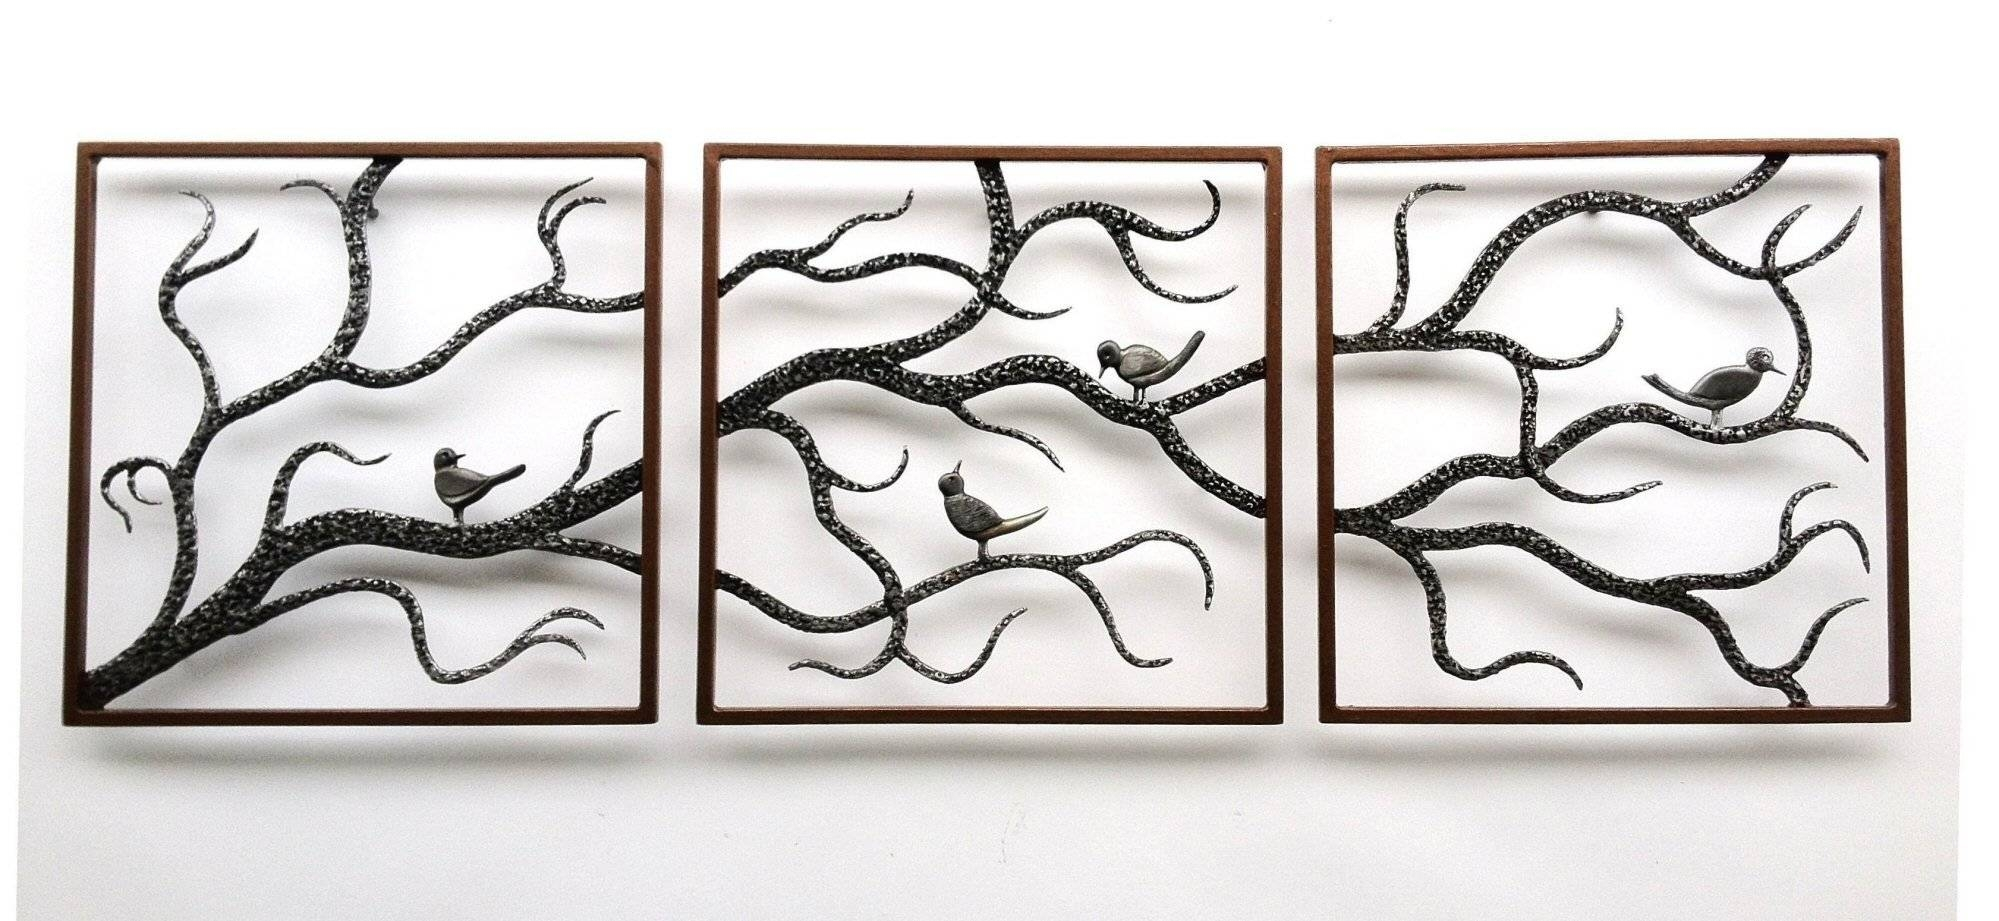 Wall Art Designs: Metal Wall Art Trees Birch Three Framed Cute Pertaining To Latest Square Metal Wall Art (View 16 of 20)